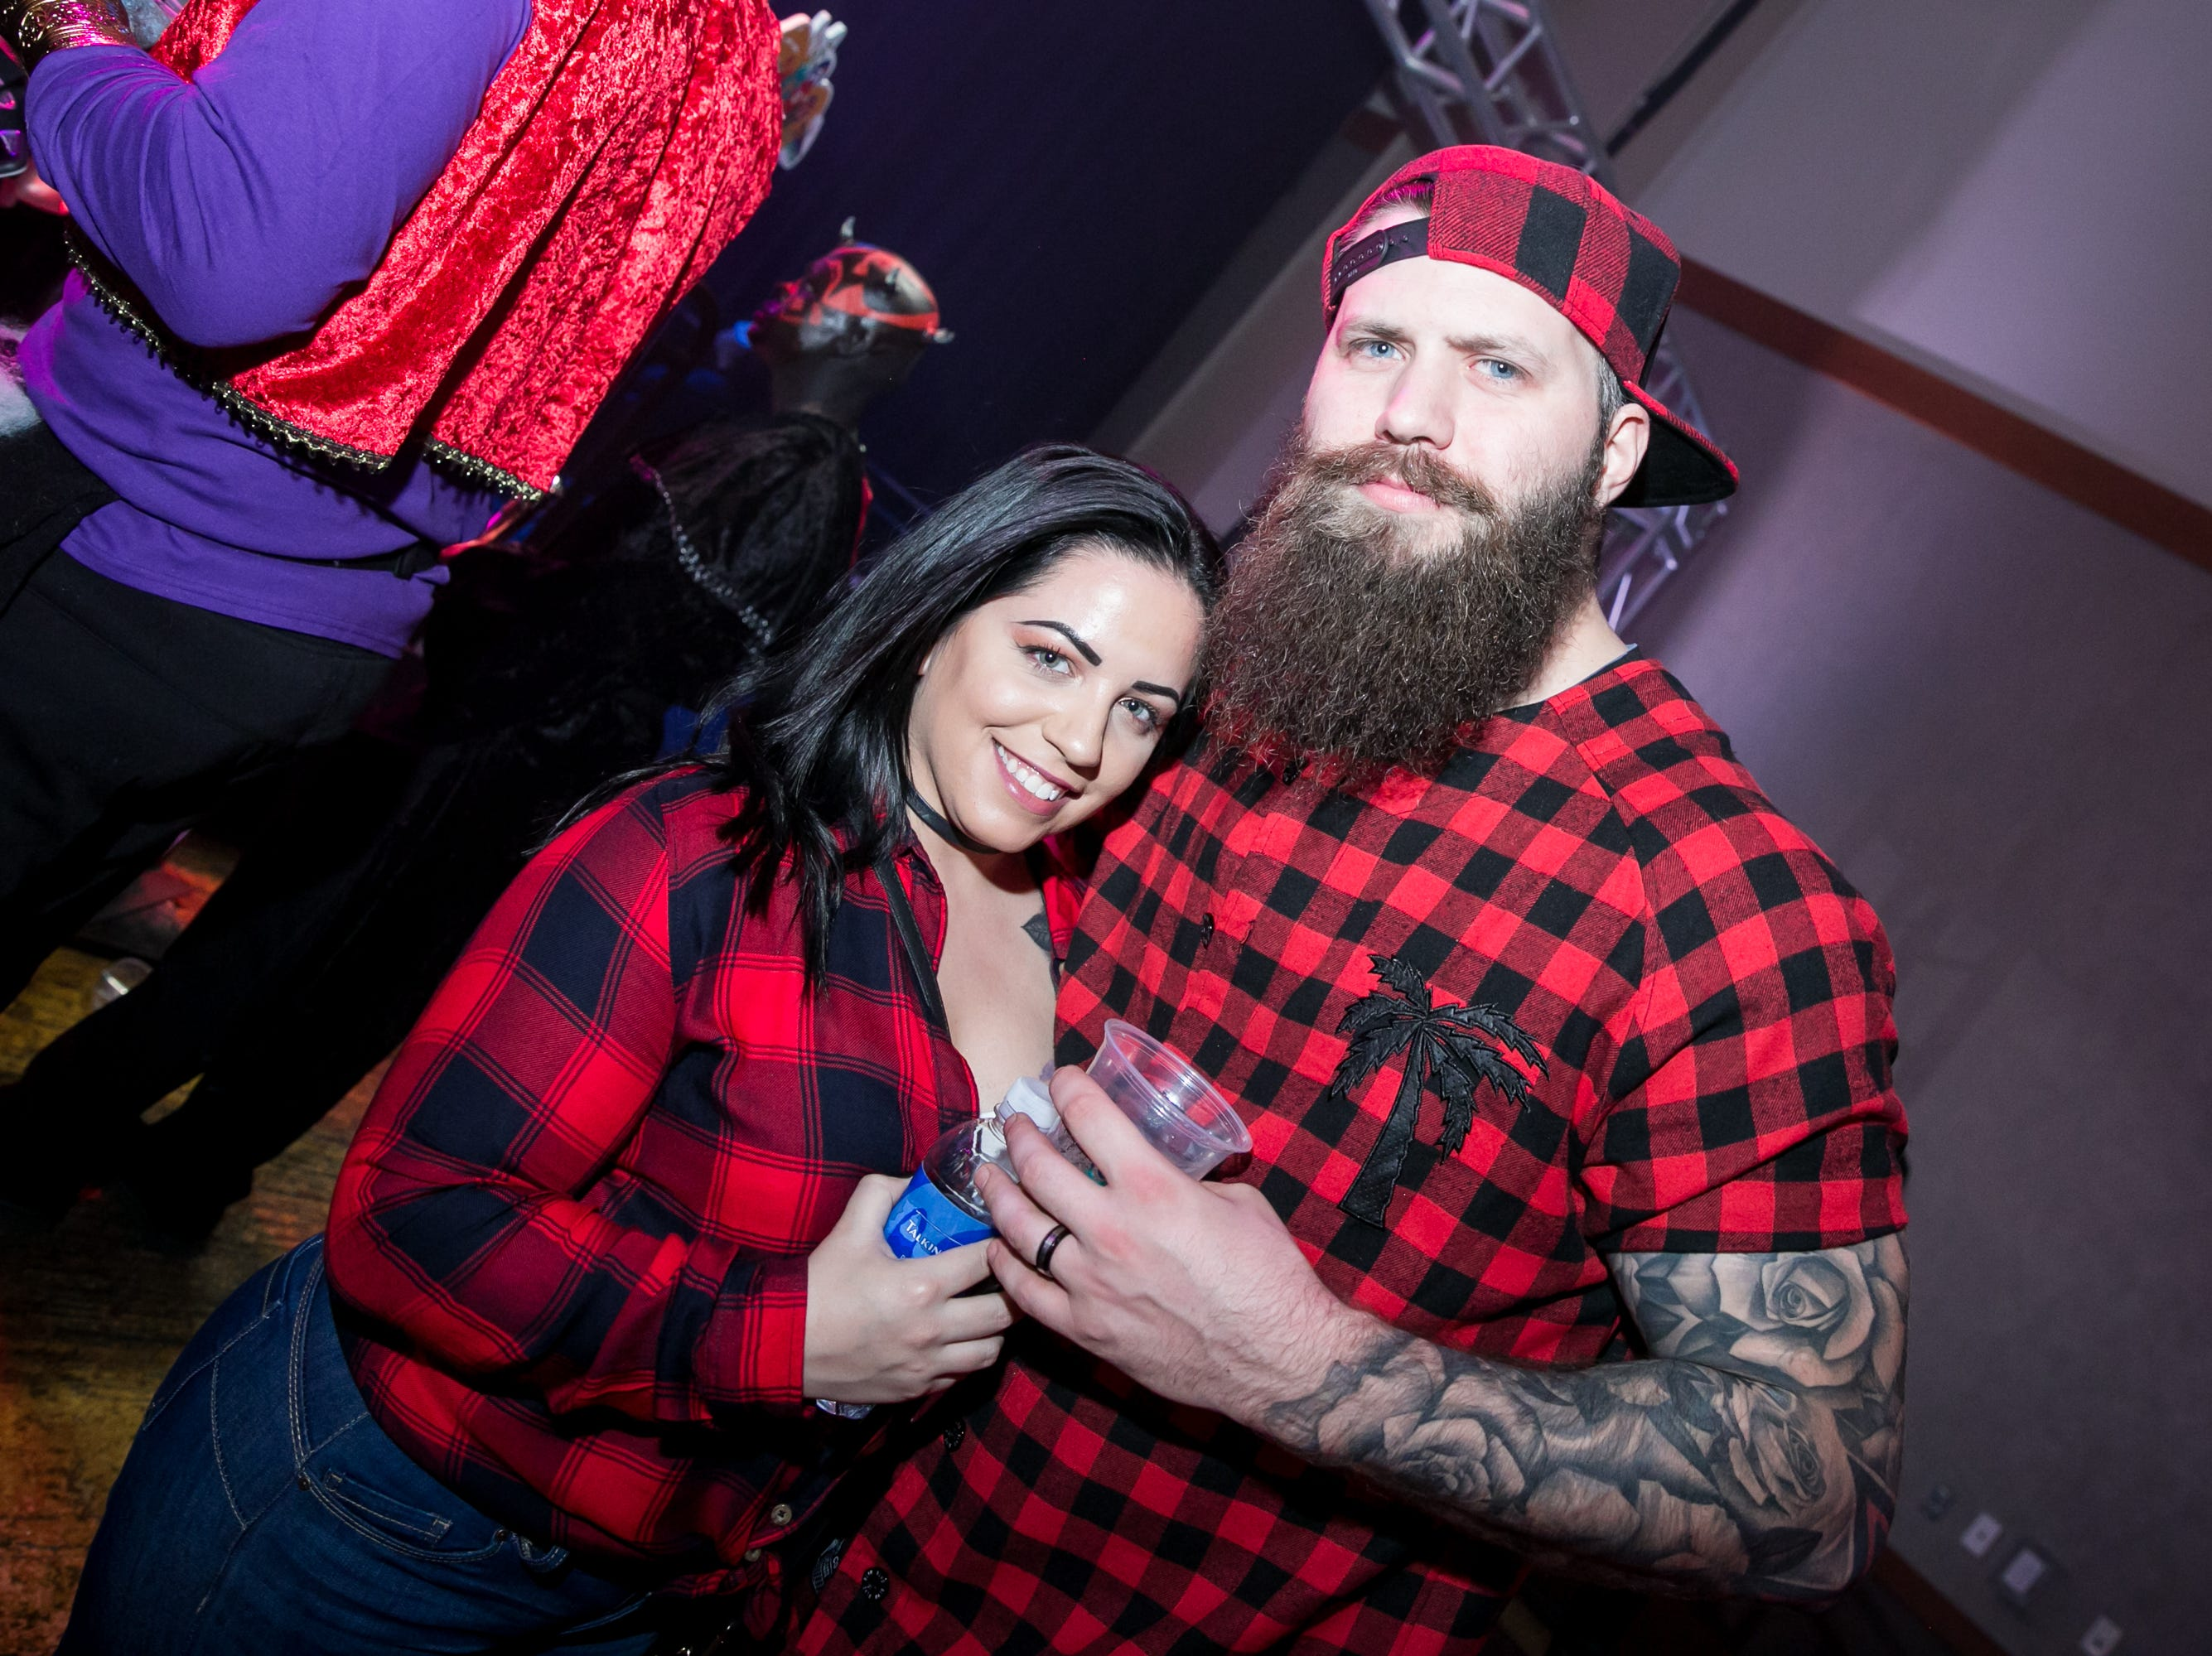 These lumberjacks looked dashing during Wicked Ball at Talking Stick Resort on Saturday, October 27, 2018.